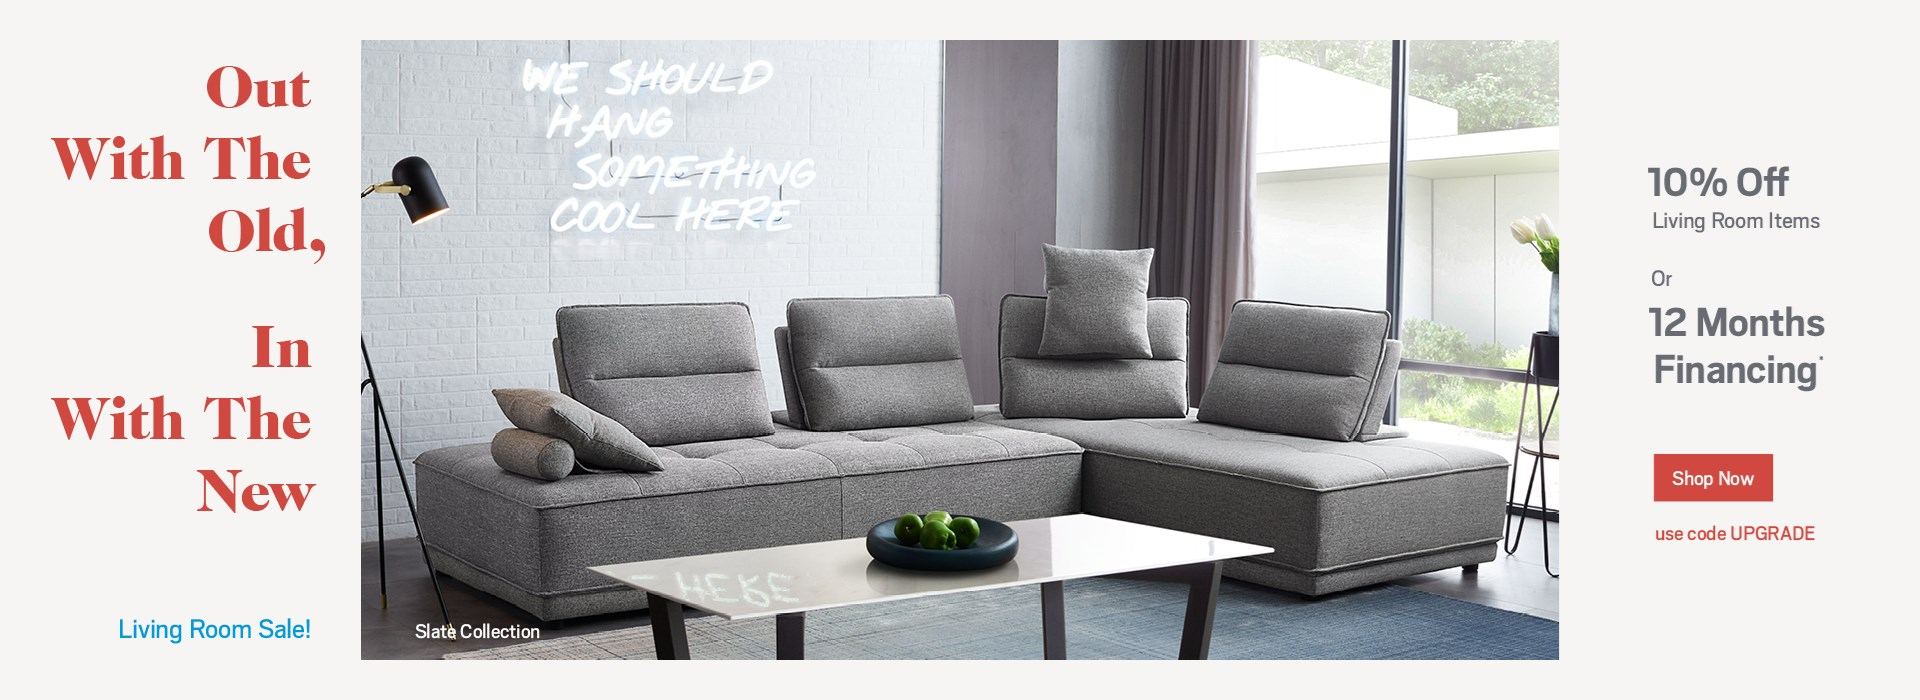 Save 10% off qualifying living room items. See store for details.